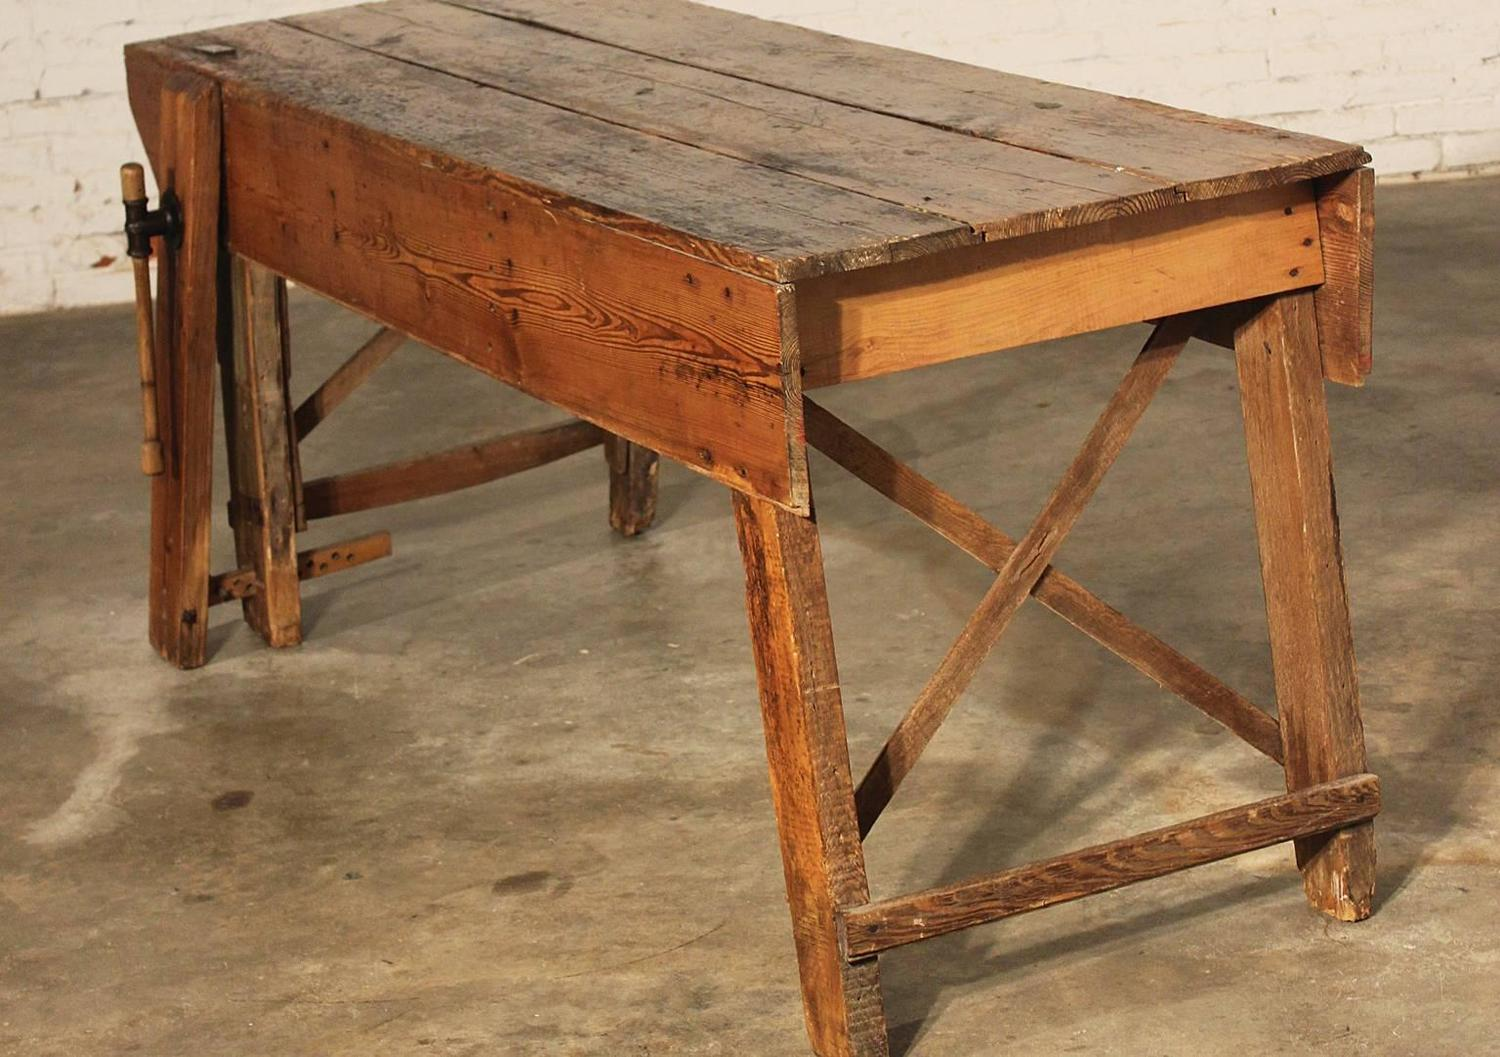 Primitive Industrial Farmhouse Style Dining Table Workbench with Wood Vise Le